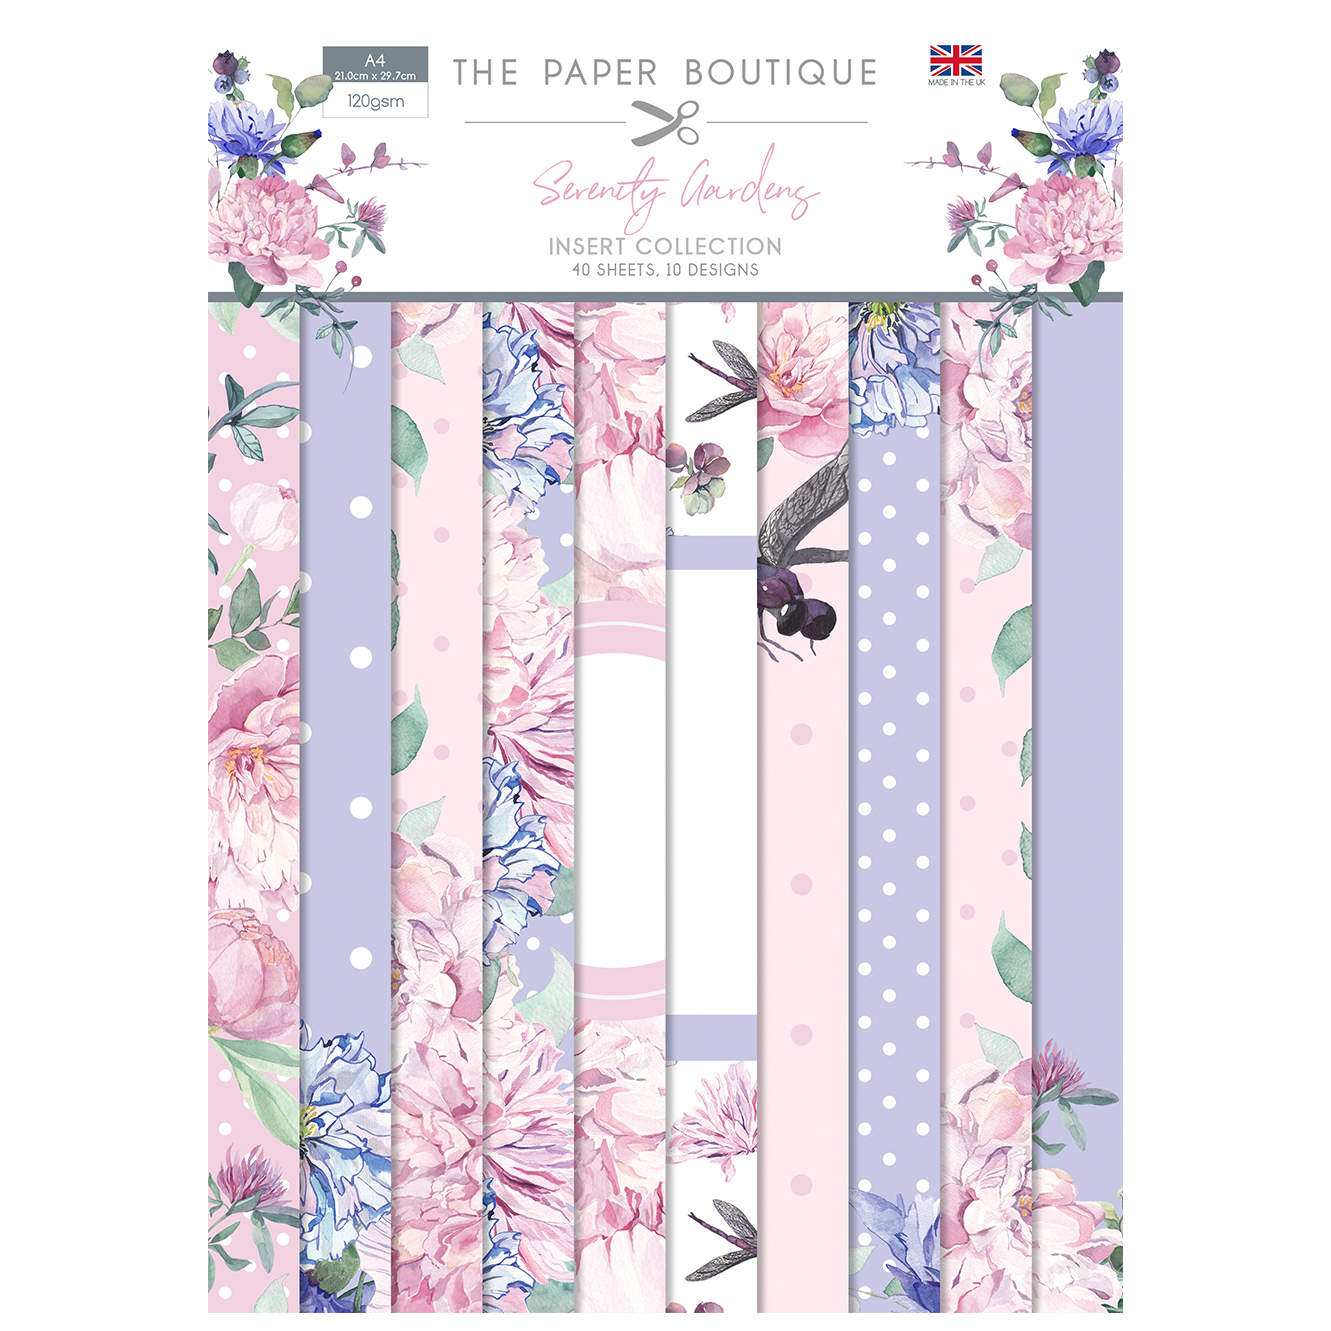 The Paper Boutique Serenity Gardens Insert Collection